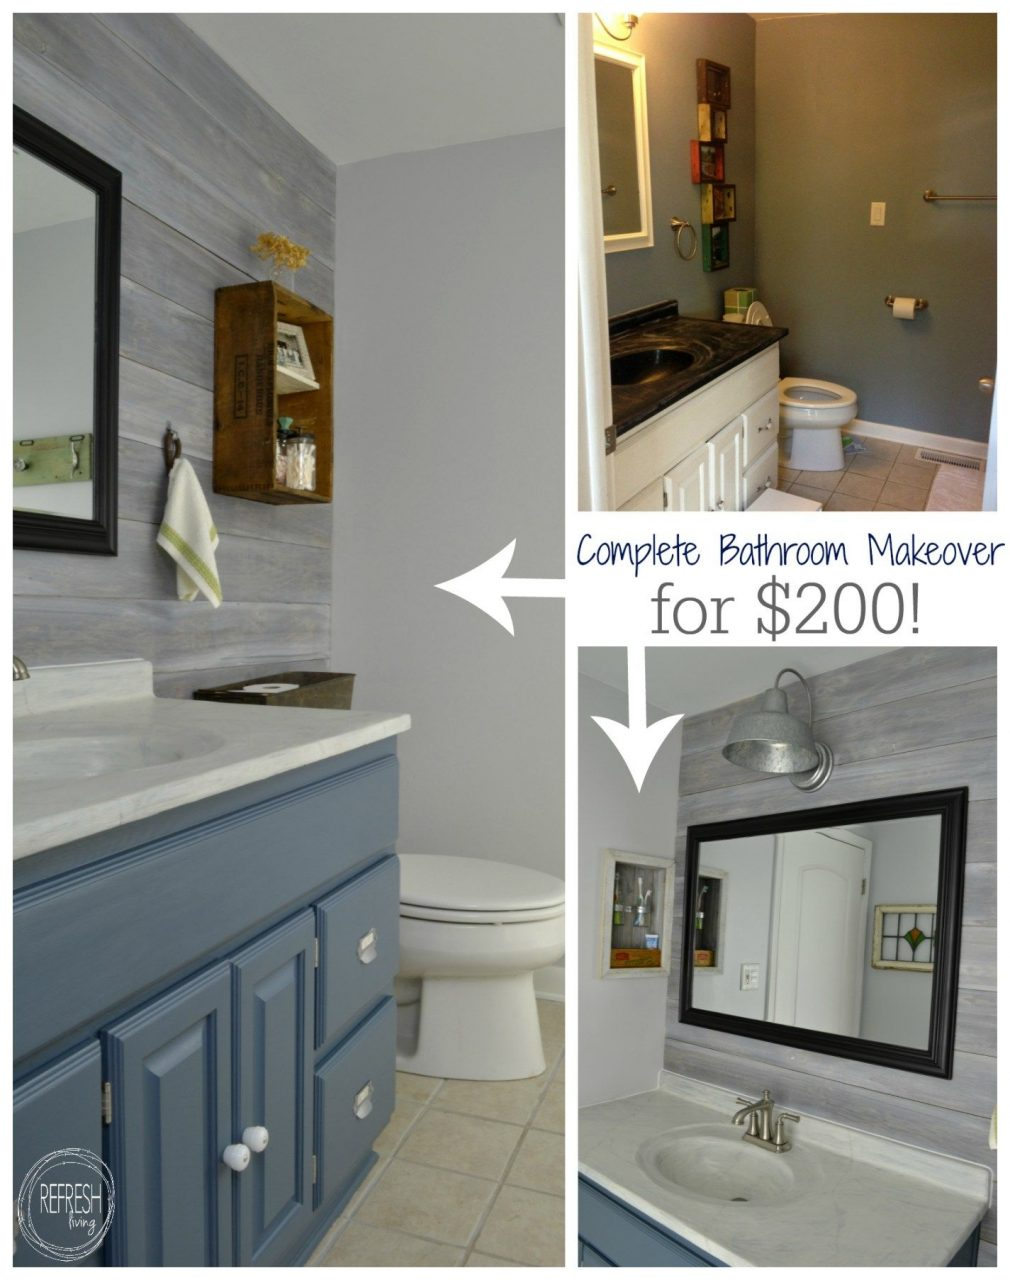 Cheap Bathroom Remodel Is Good Basic Bathroom Renovation Is Good